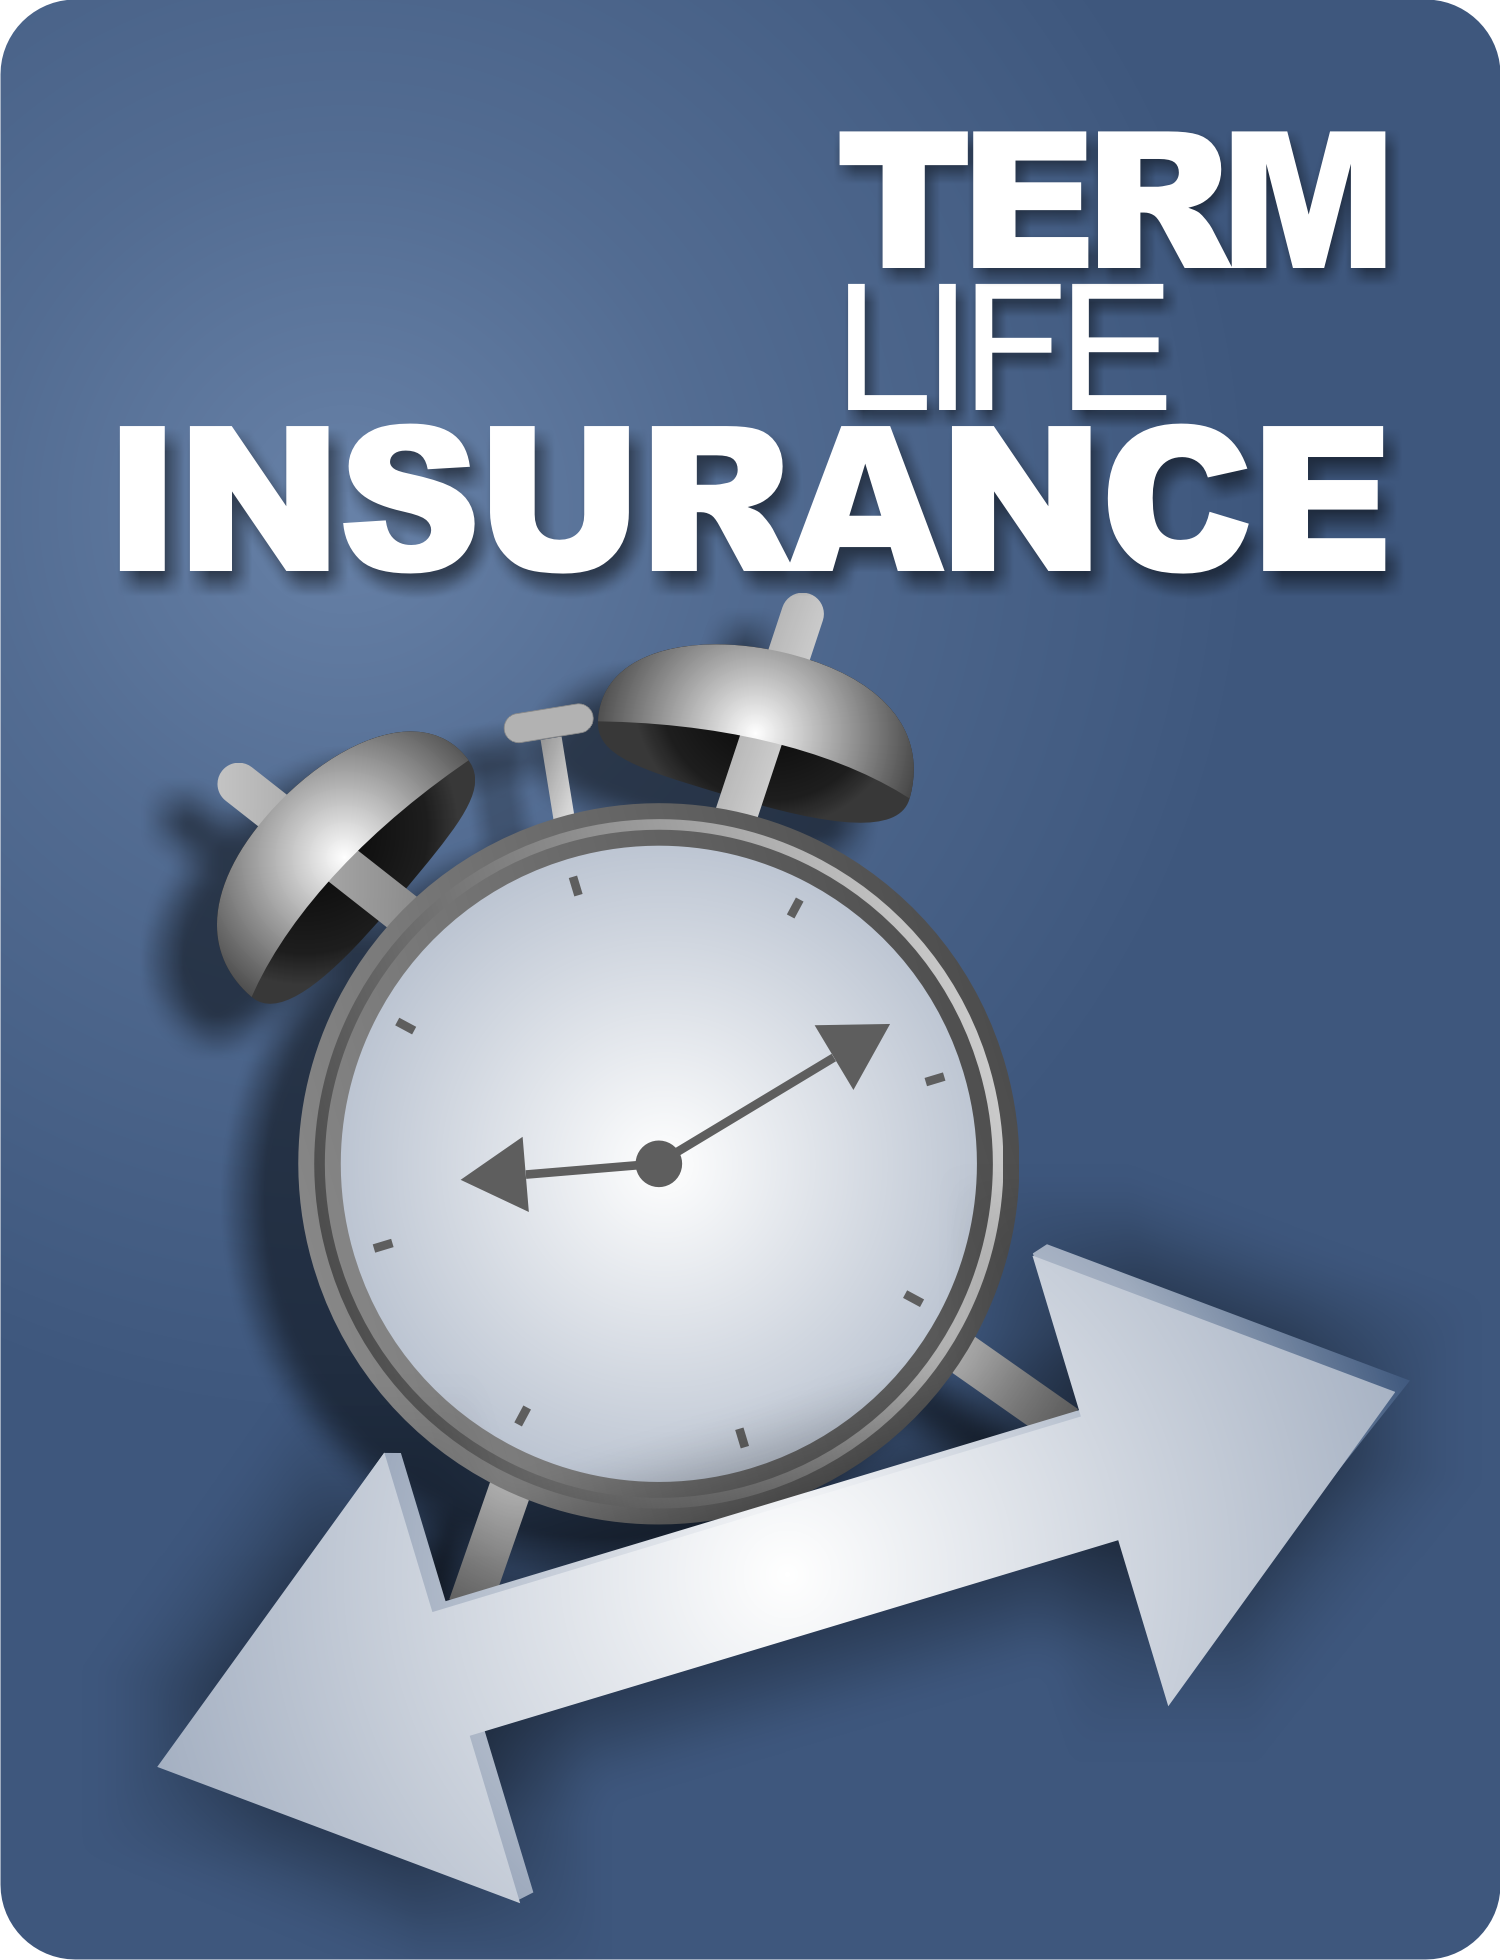 Term Life Insurance Quote Stunning Don't Wait Until It's Too Late Protect Your Family With A Term Life . Design Ideas